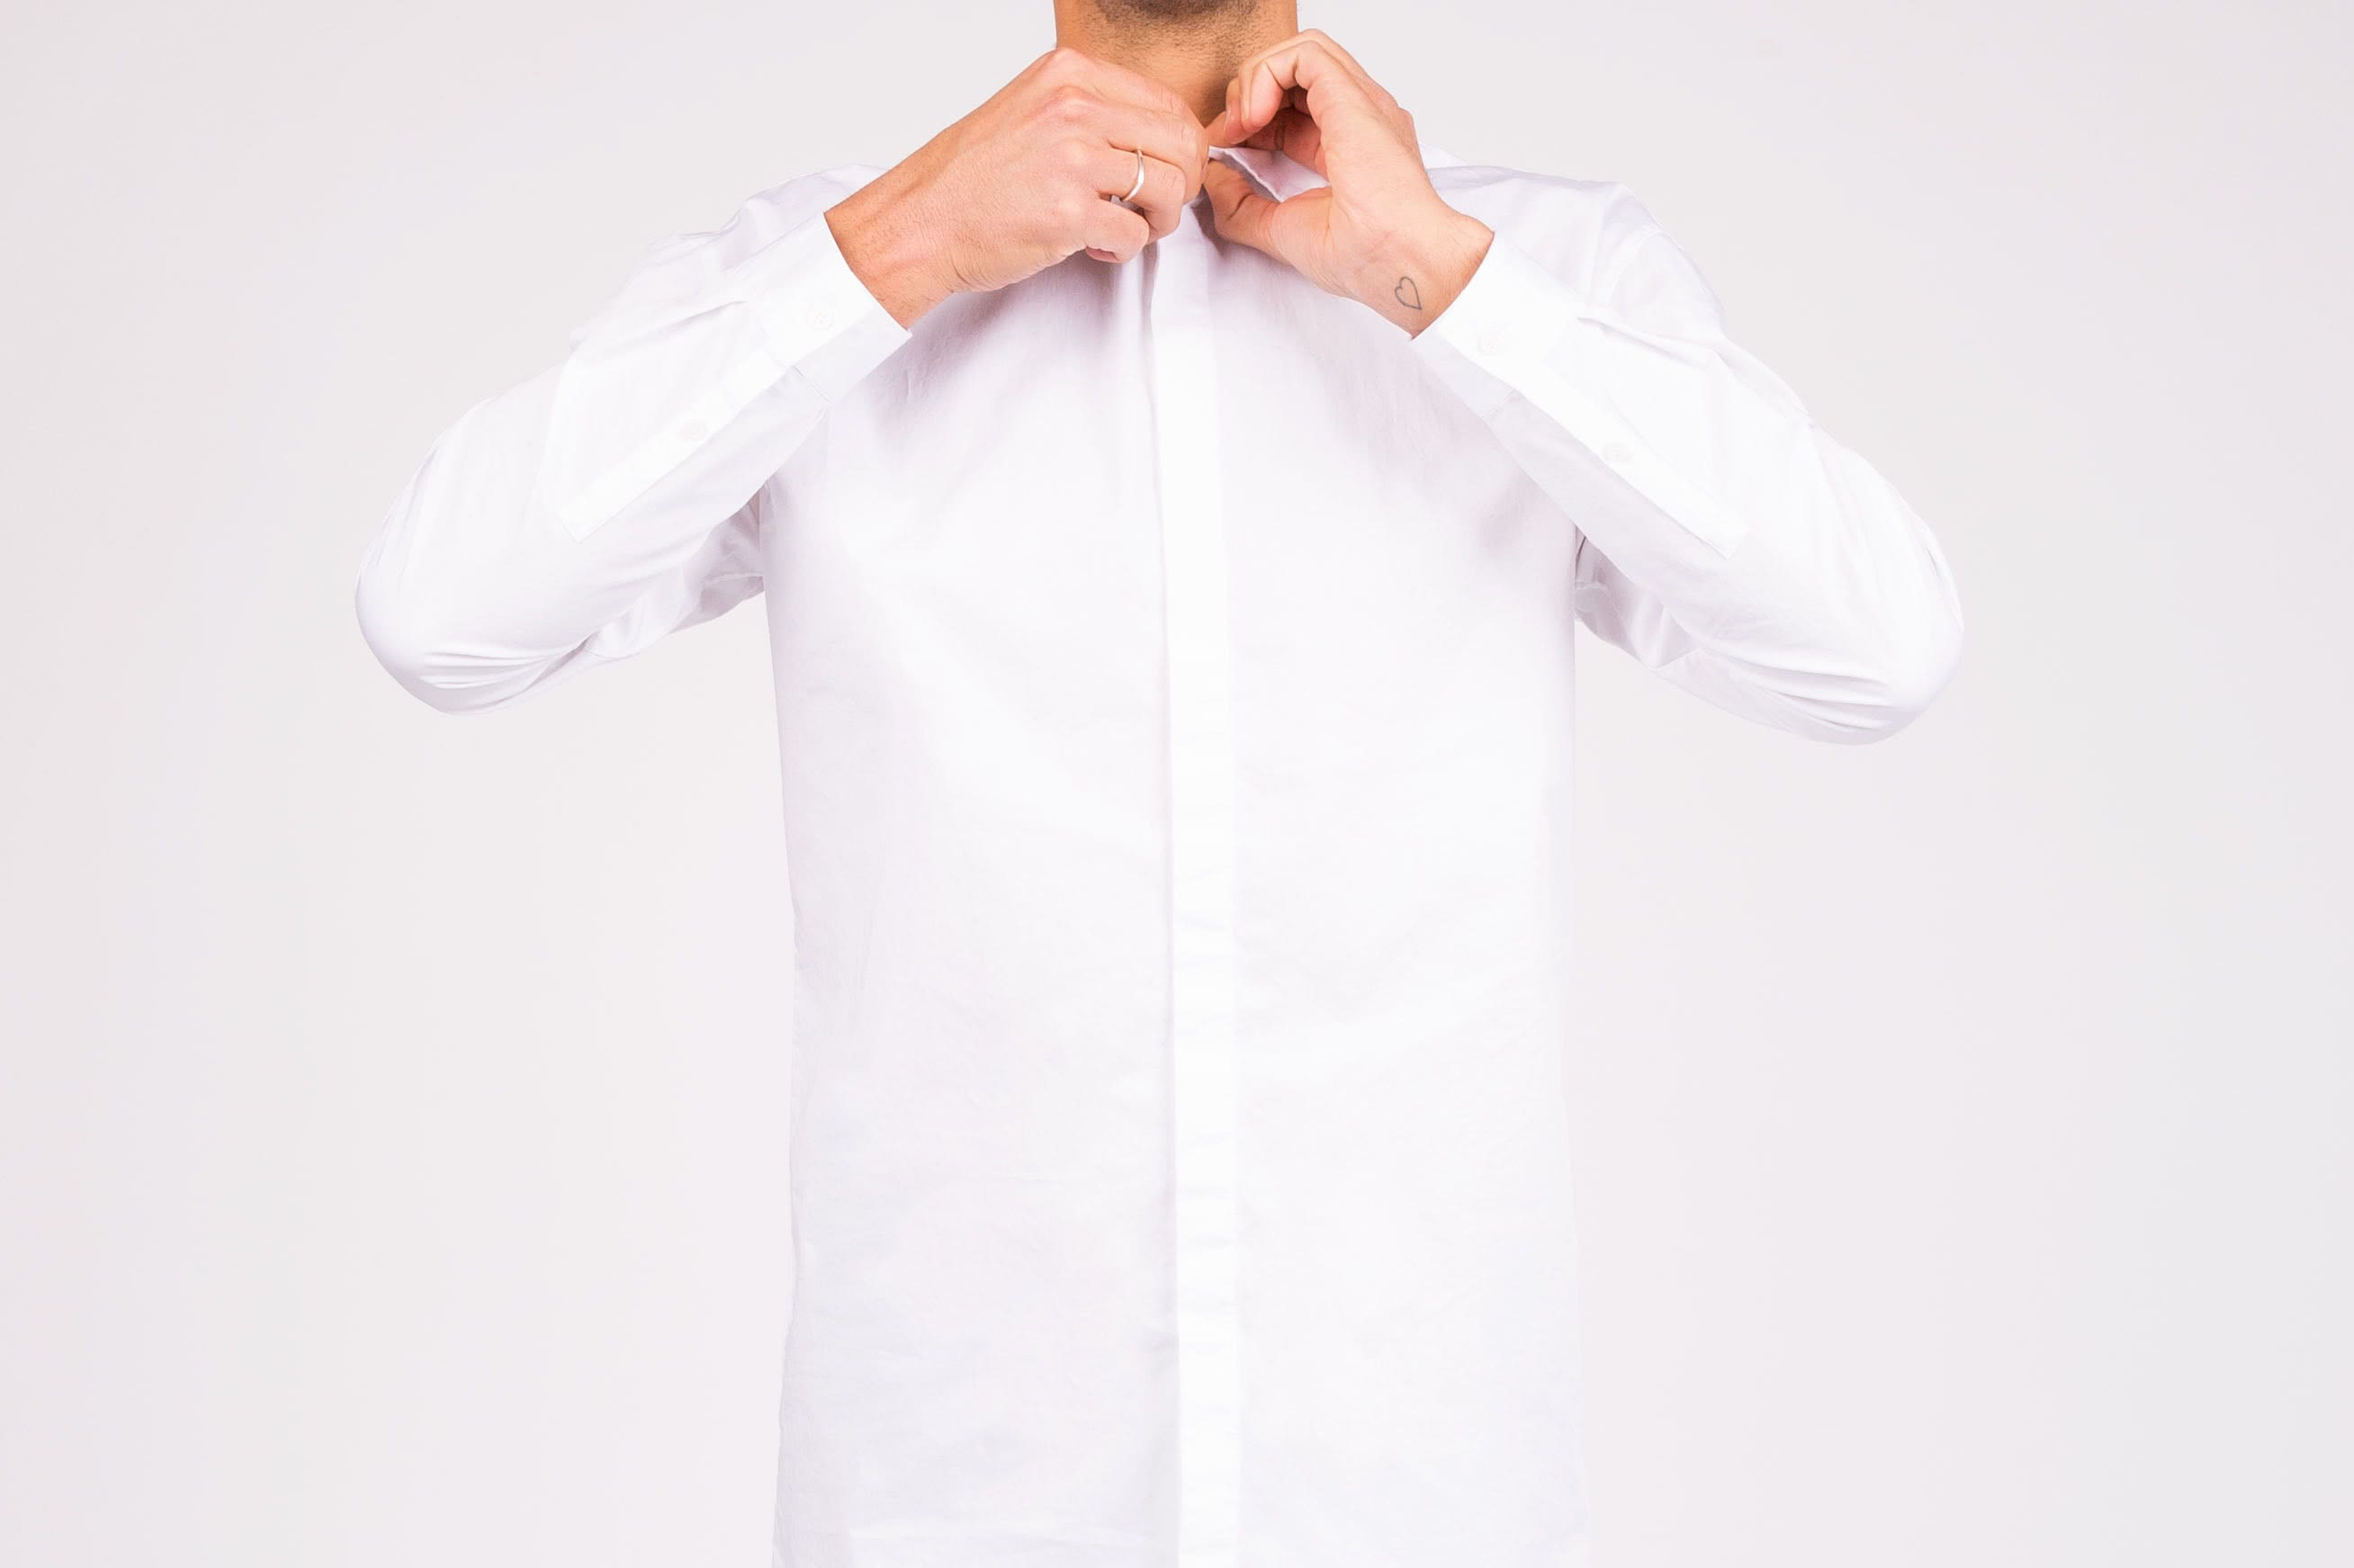 Ode to the white shirt/blouse (Duplicated)